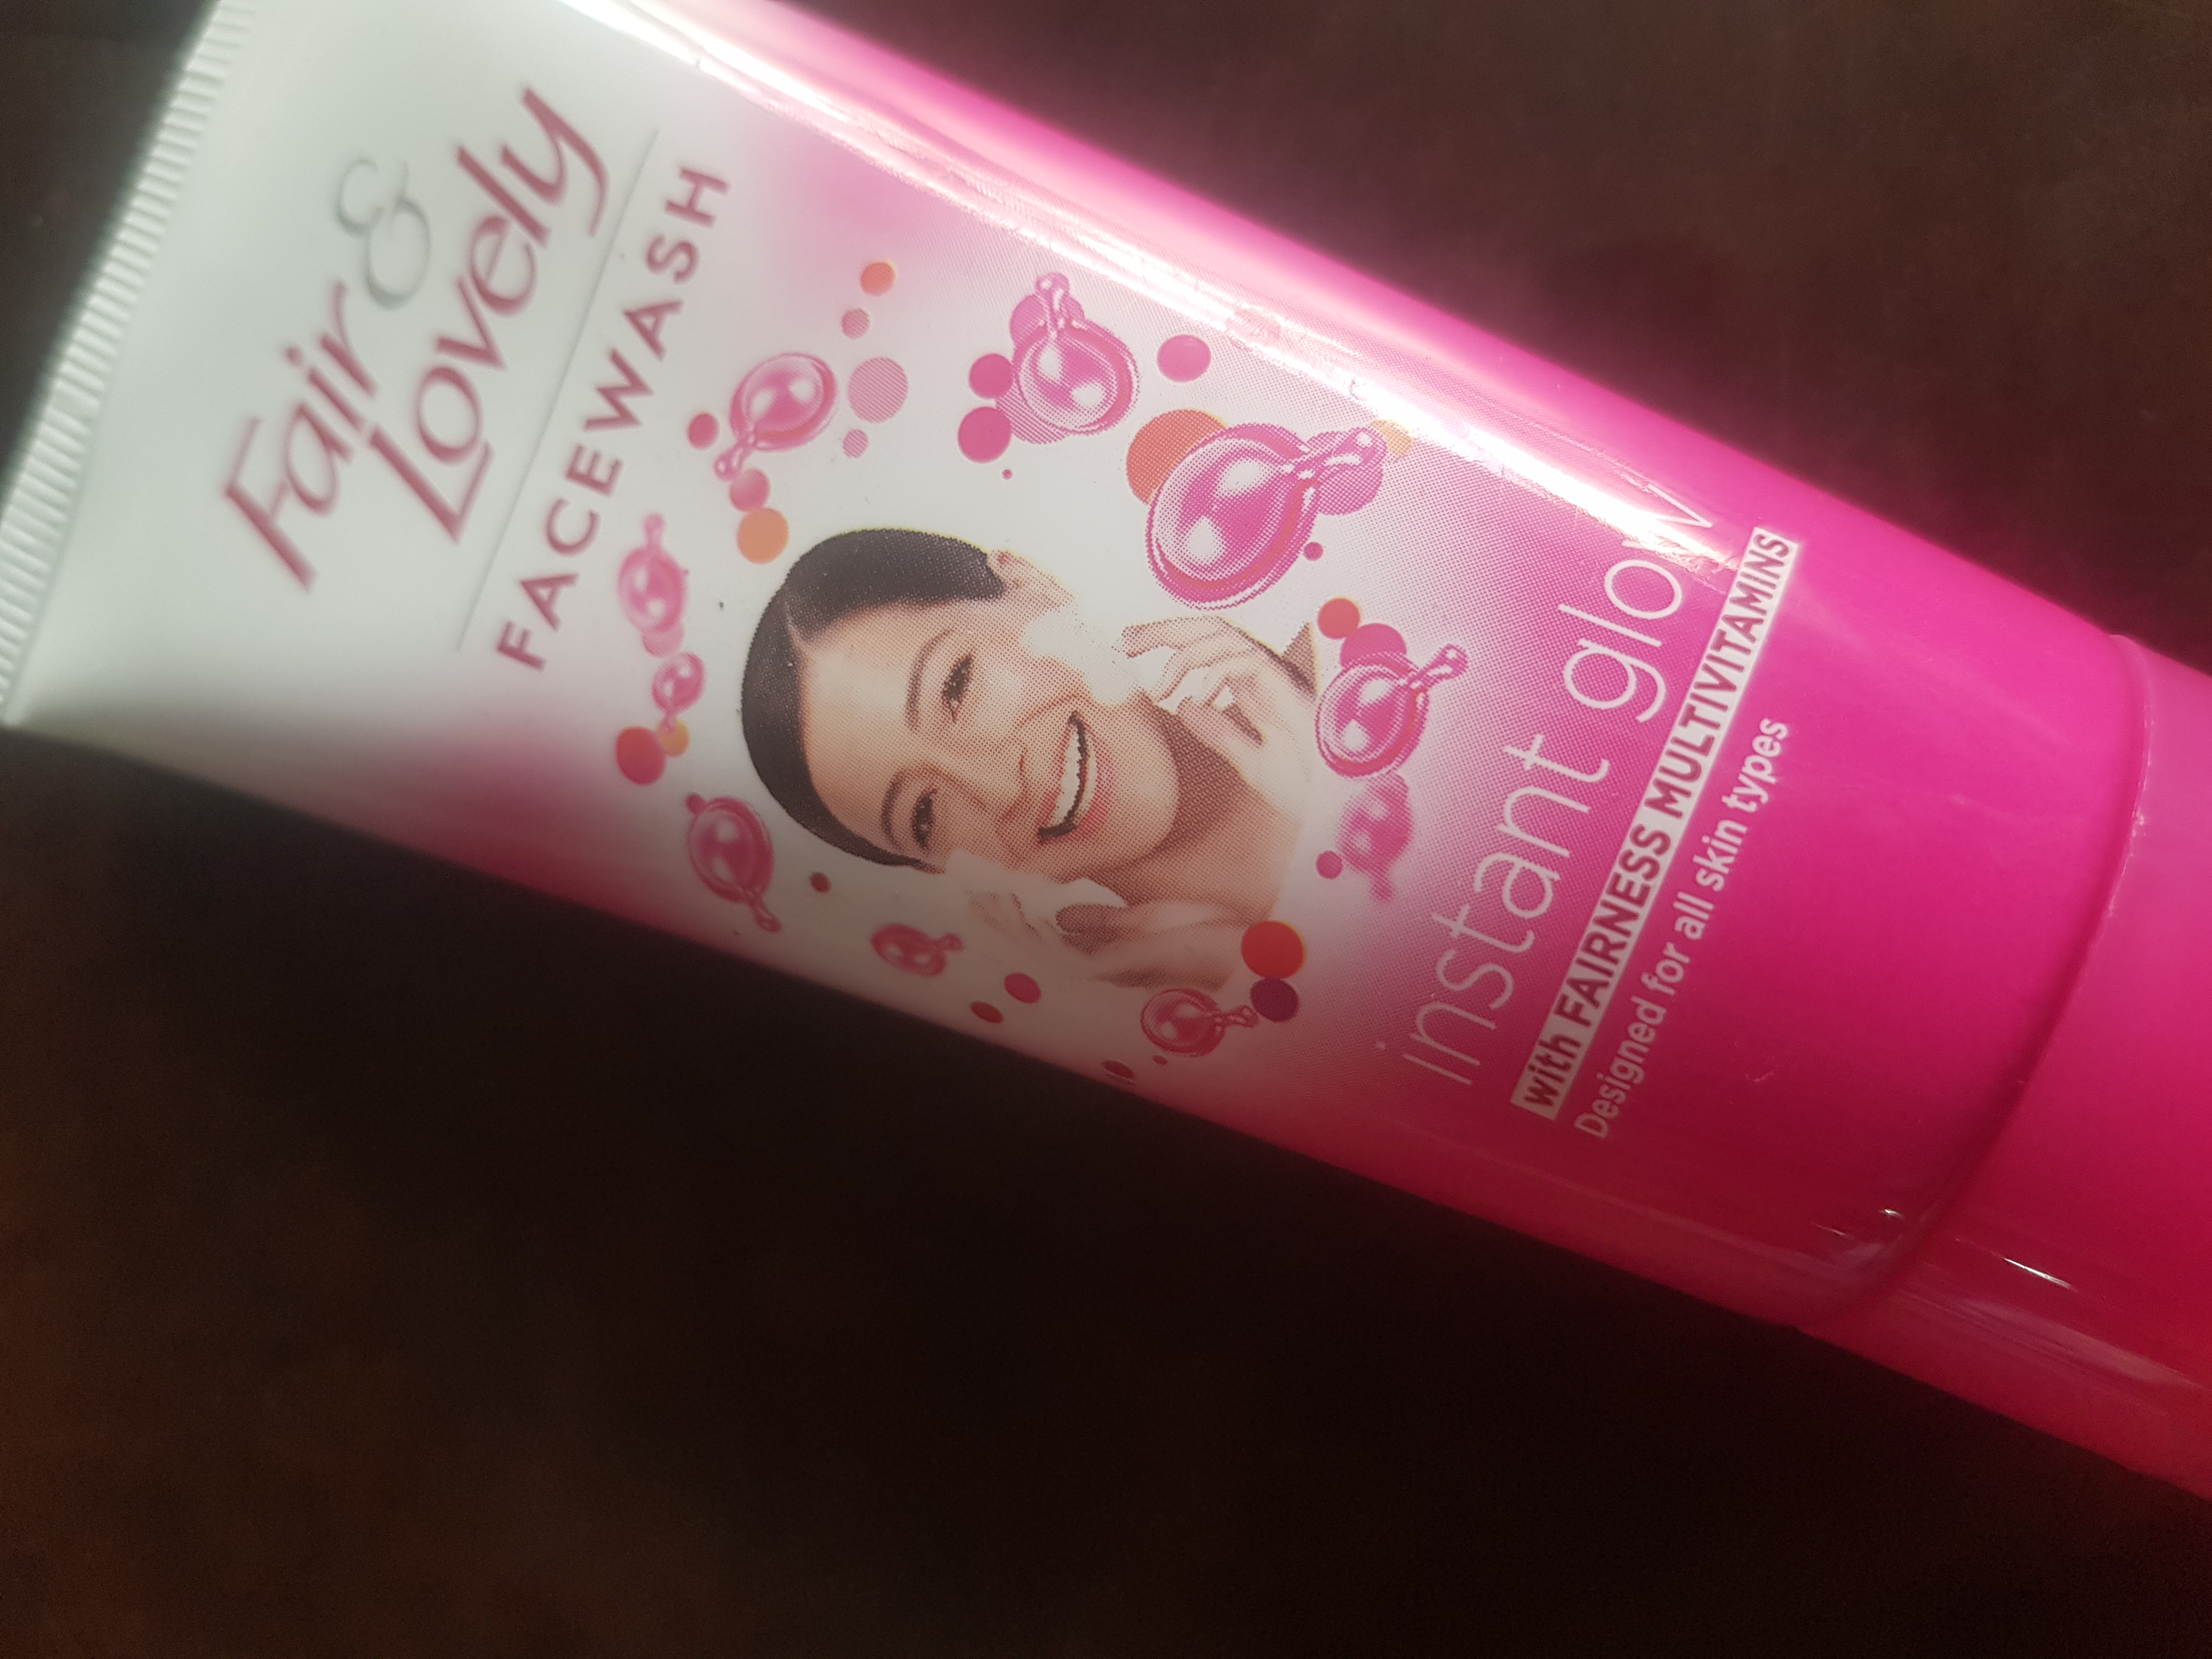 Fair & Lovely Instant Glow Clean Up Fairness Face Wash-Awesome face wash for Fair and Lovely fans!-By poonam_kakkar